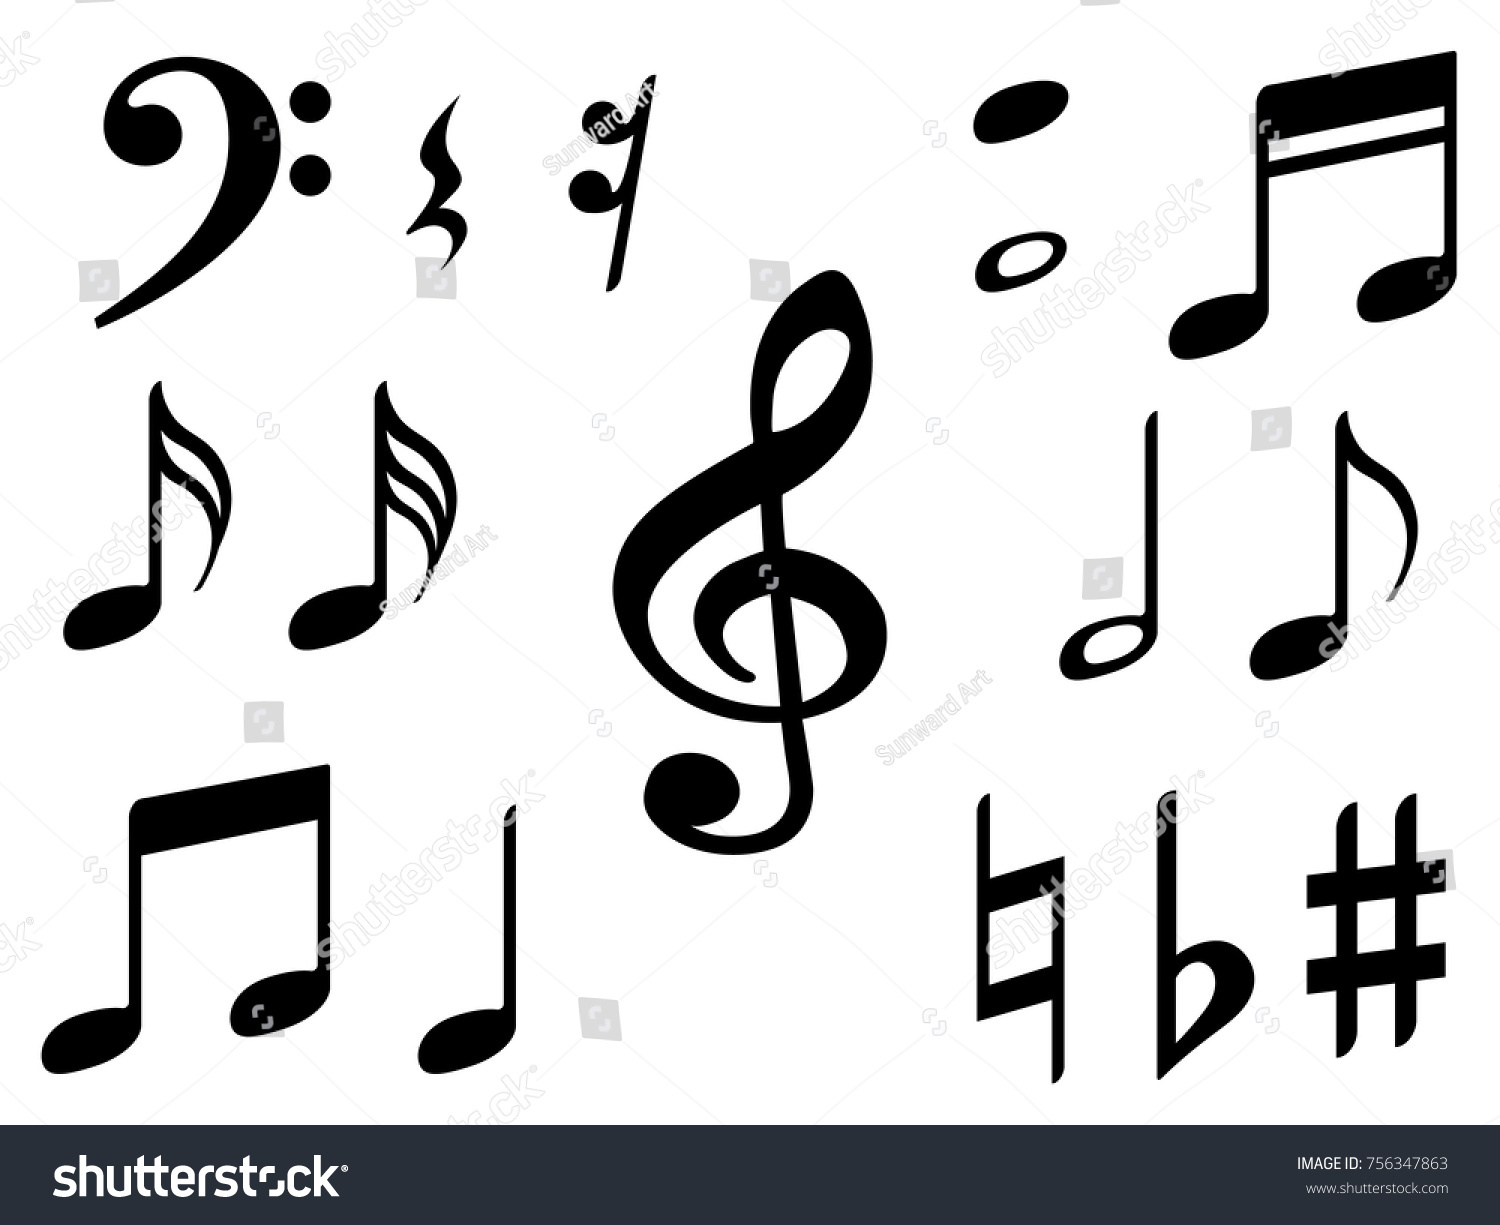 Music note icons vector set black stock vector 756347863 music note icons vector set black symphony or melody signs isolated on white background biocorpaavc